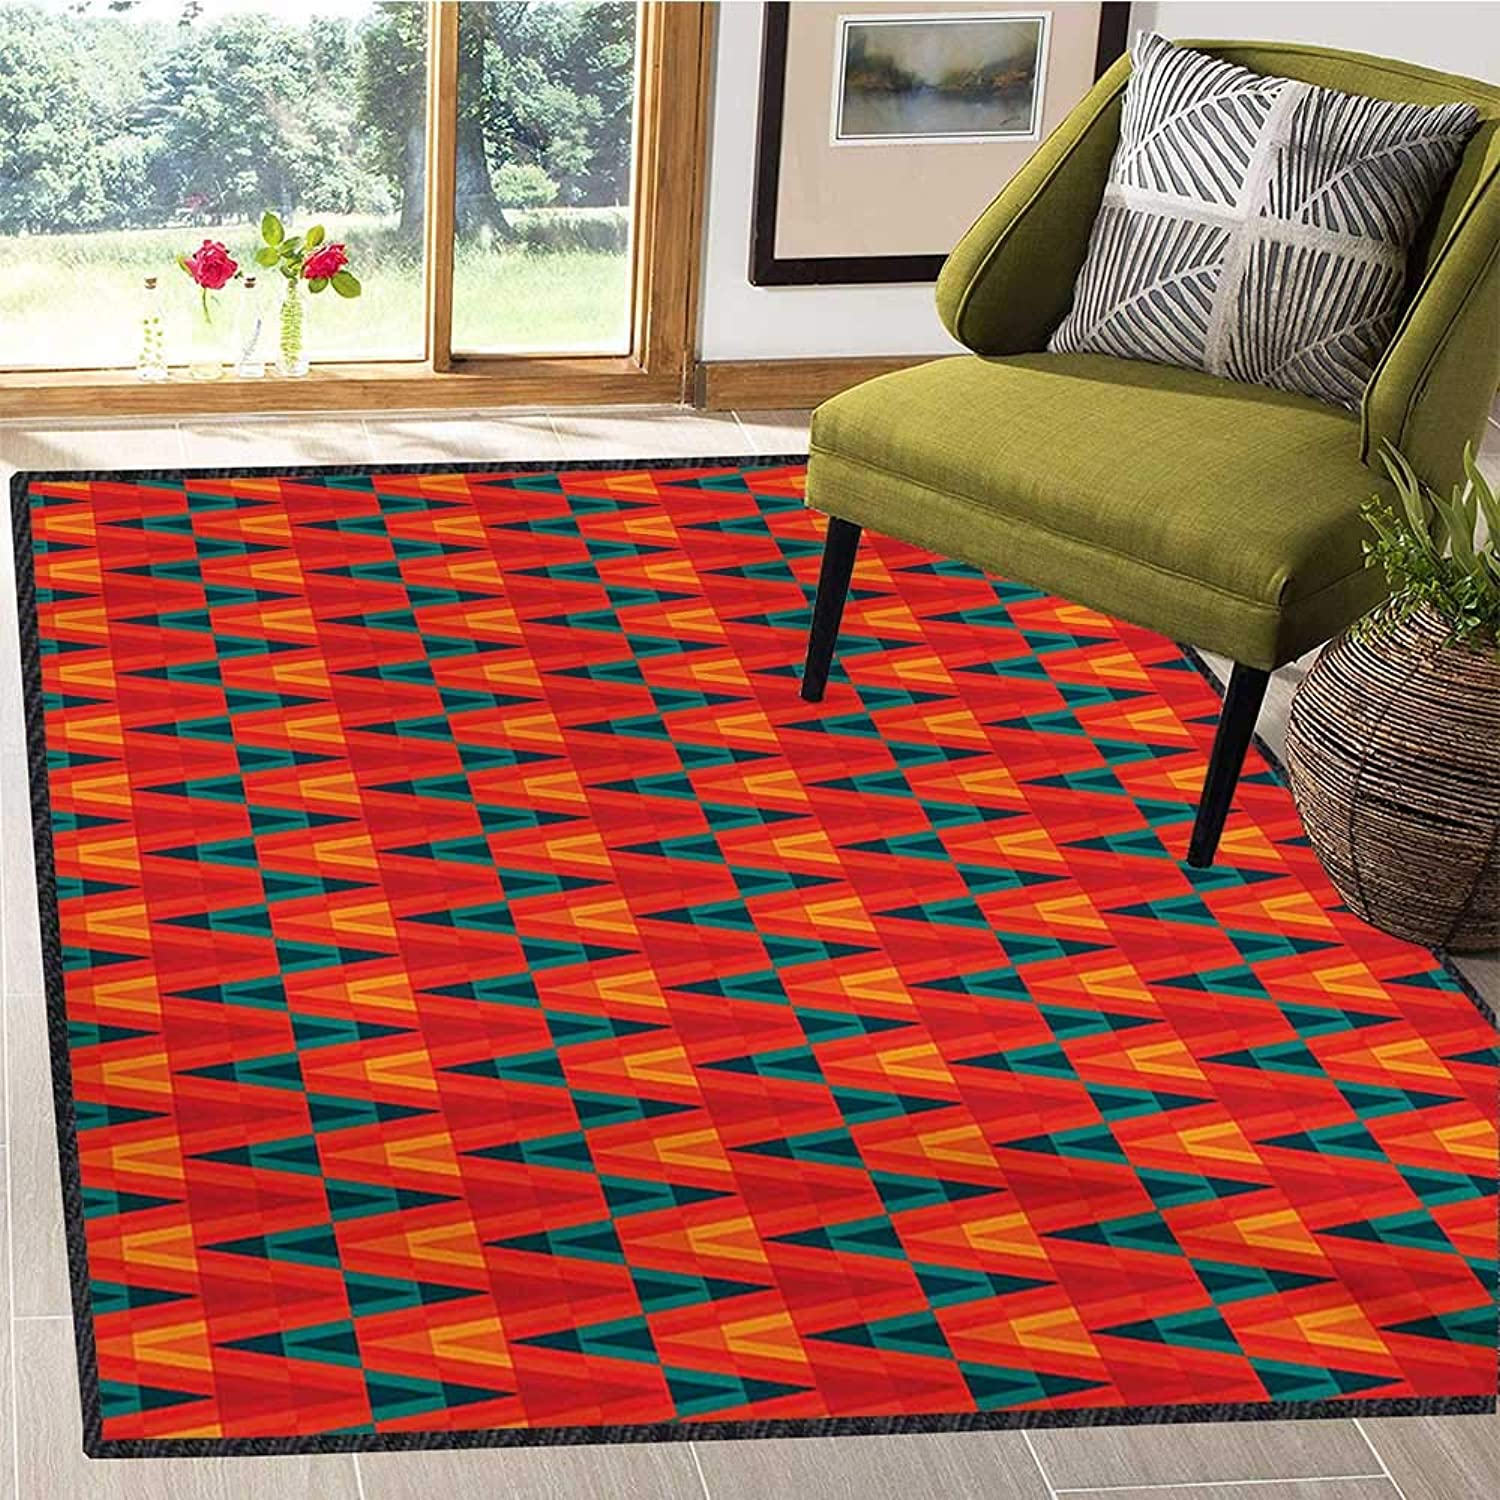 Ethnic, Floor Mat for Kids, Aztec Culture Inspired Chevron Zigzags and Triangles Vintage Tribal Motifs, Door Mats for Inside Non Slip Backing 5x6 Ft Scarlet Ruby Teal